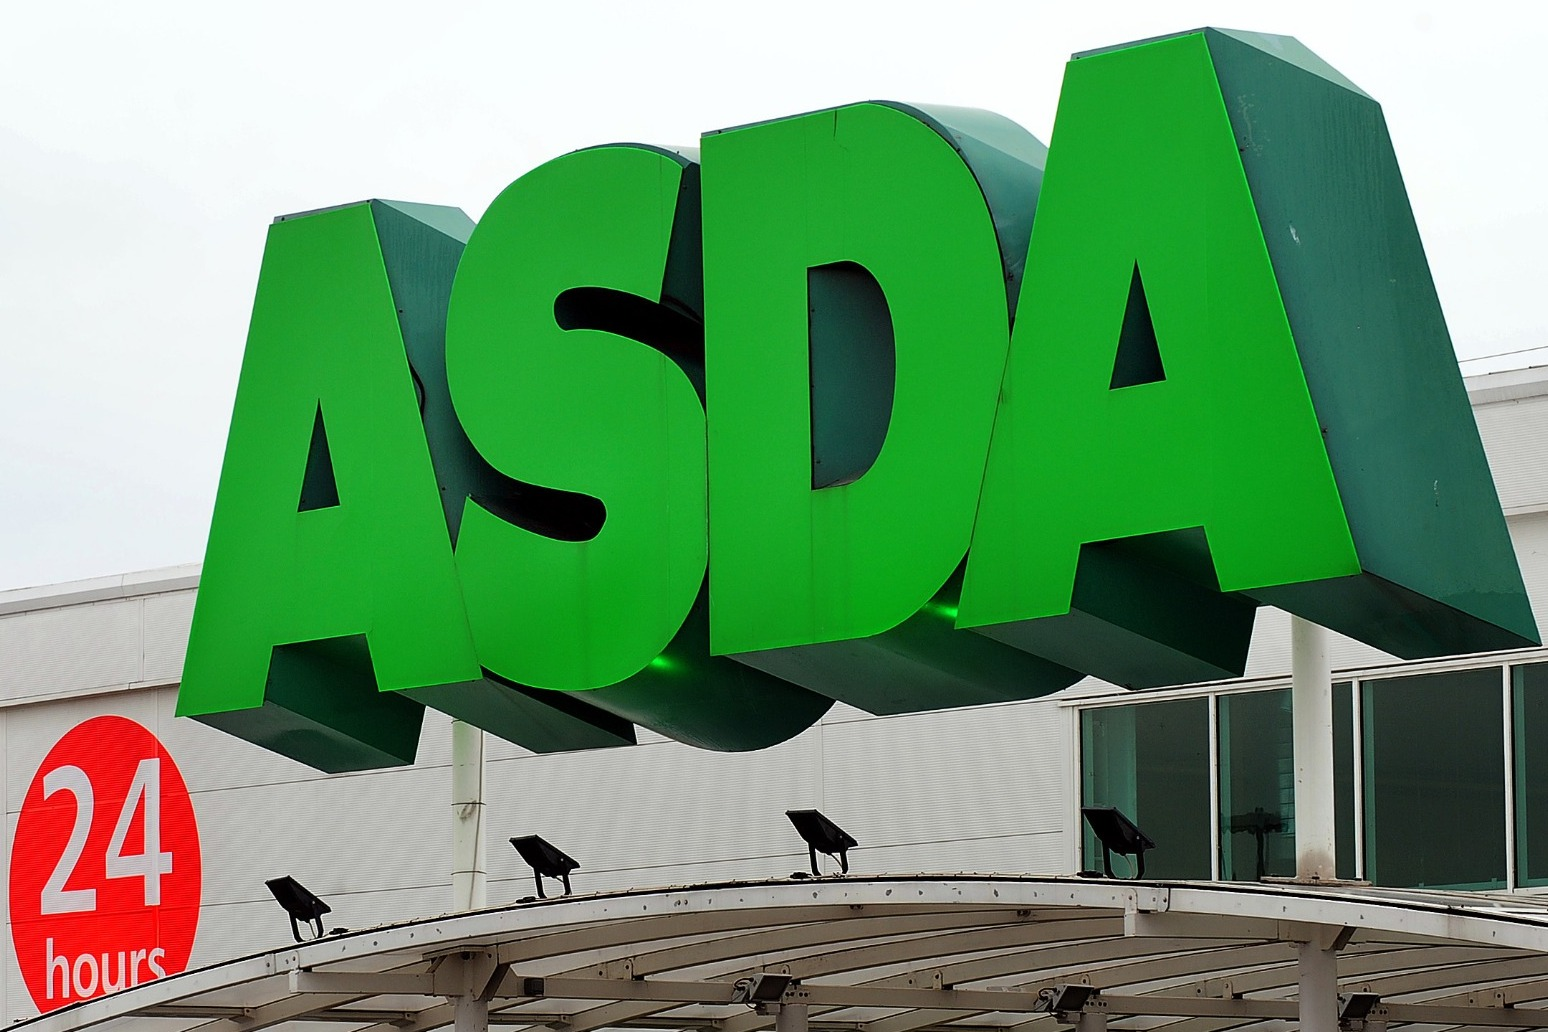 Thousands of jobs impacted as Asda launches major restructuring